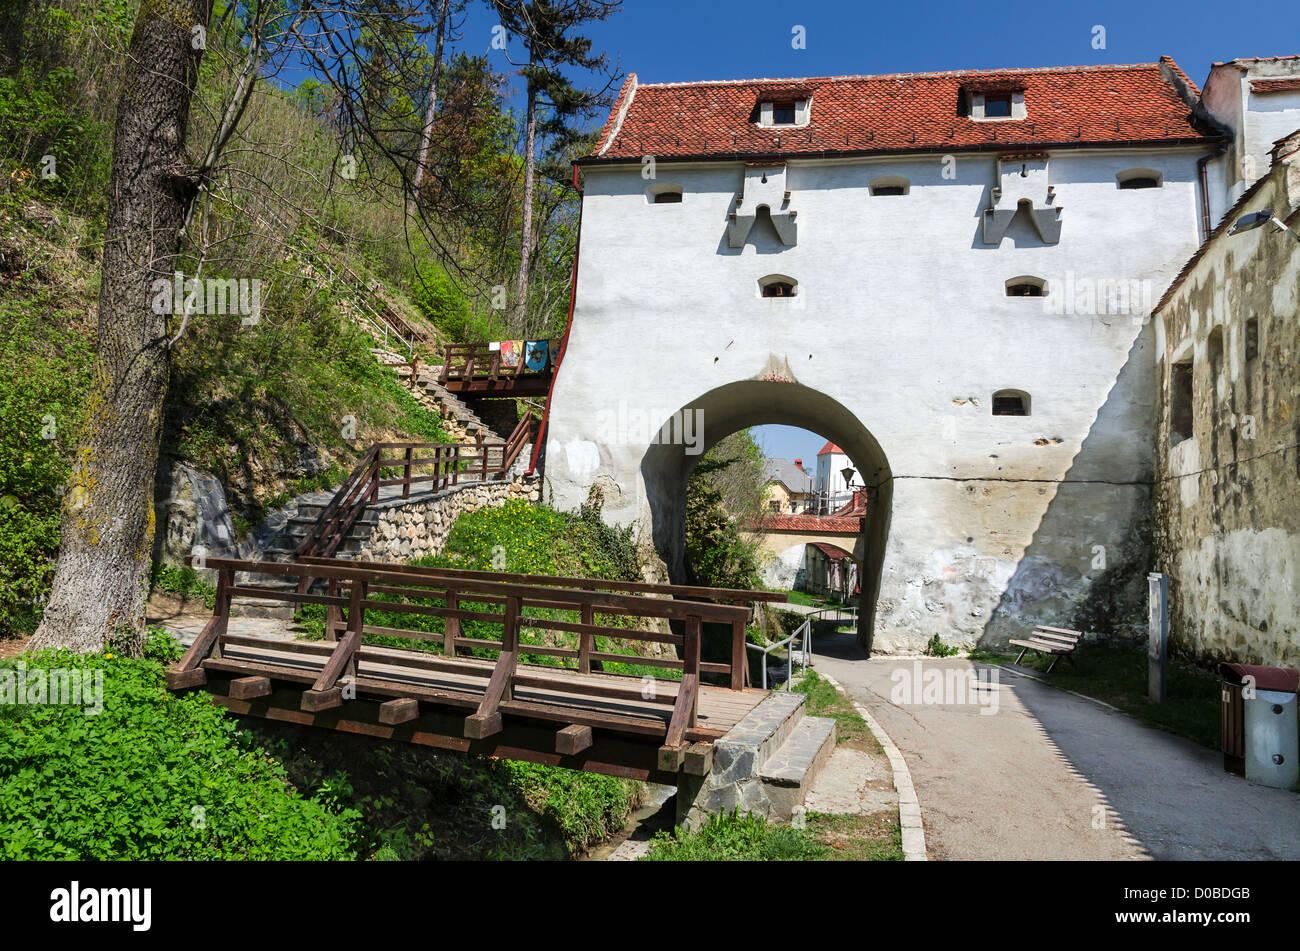 Graft Bastion was erected in 1515-1521, over the same name water channel, on Brasov medieval fortress, Romania. - Stock Image